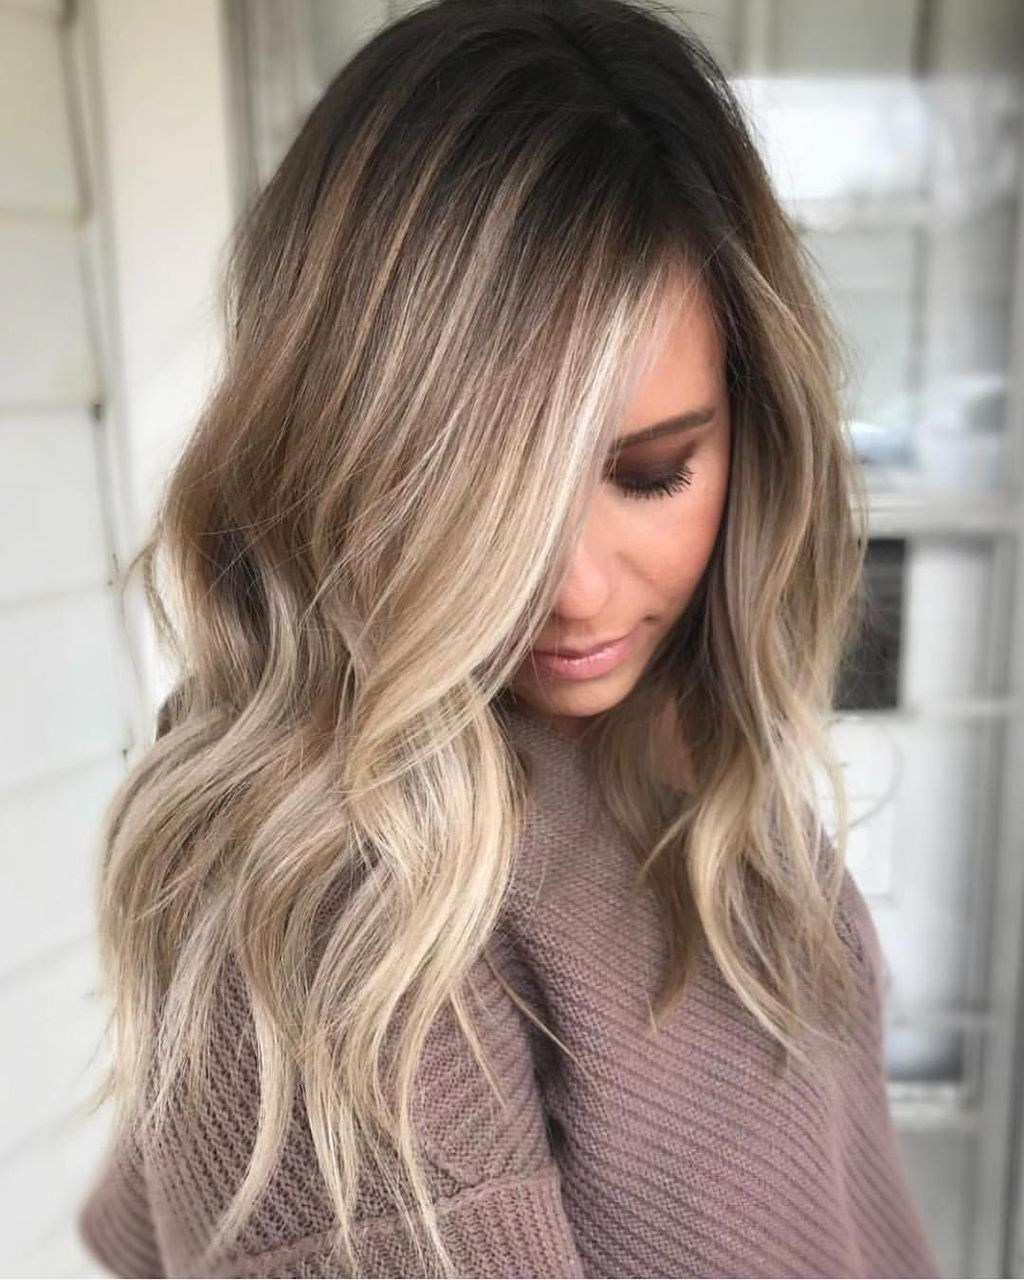 Hot Blonde Balayage Hairstyle Ideas For Any Season 09